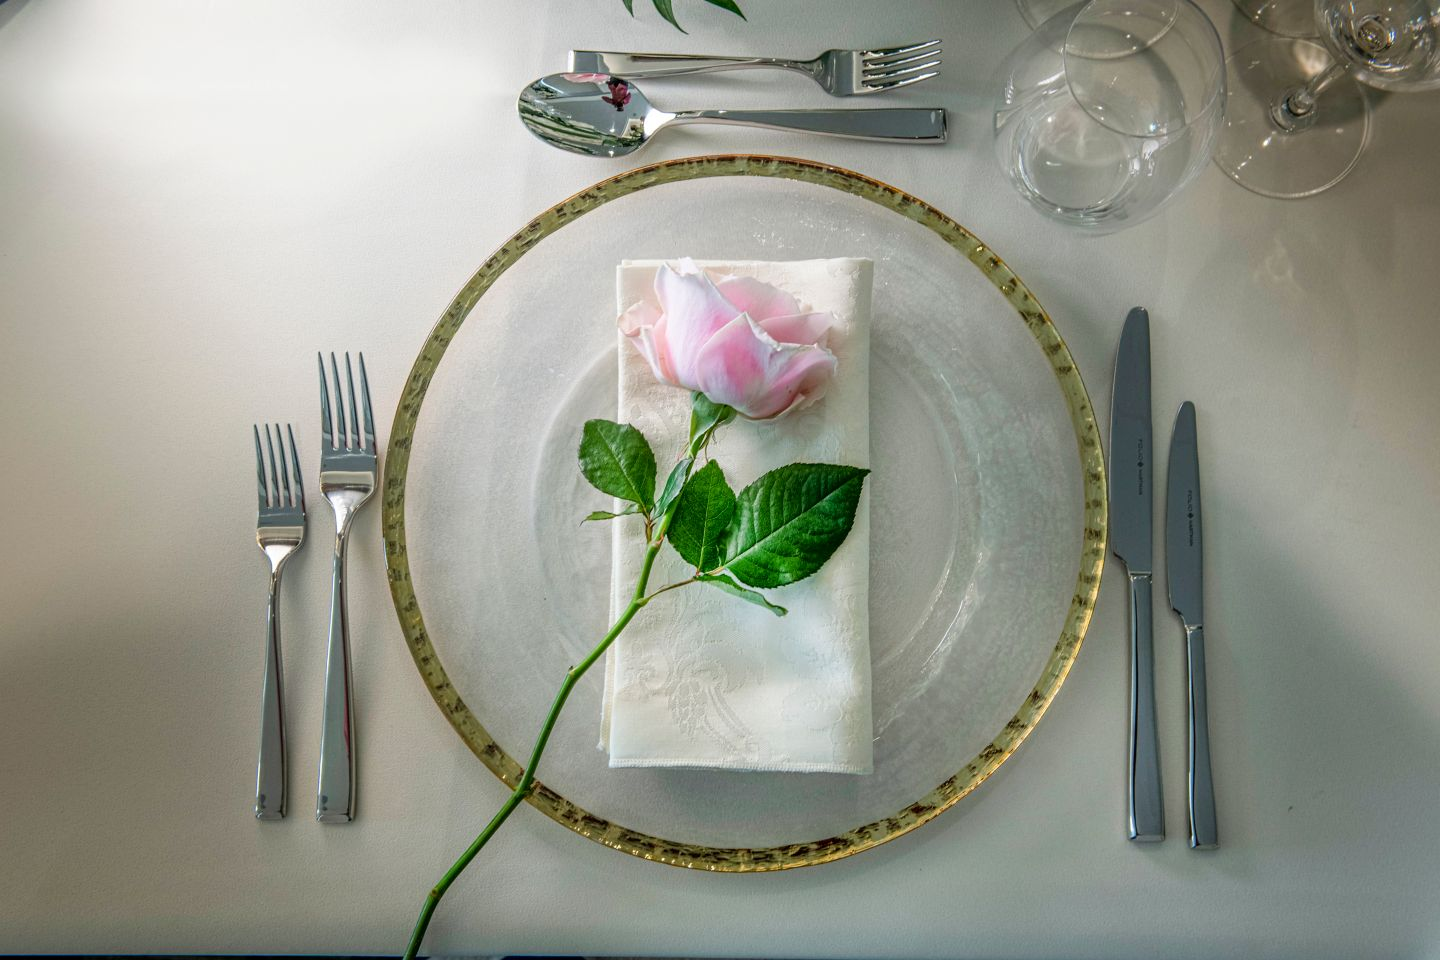 Pink rose on a dinner plate